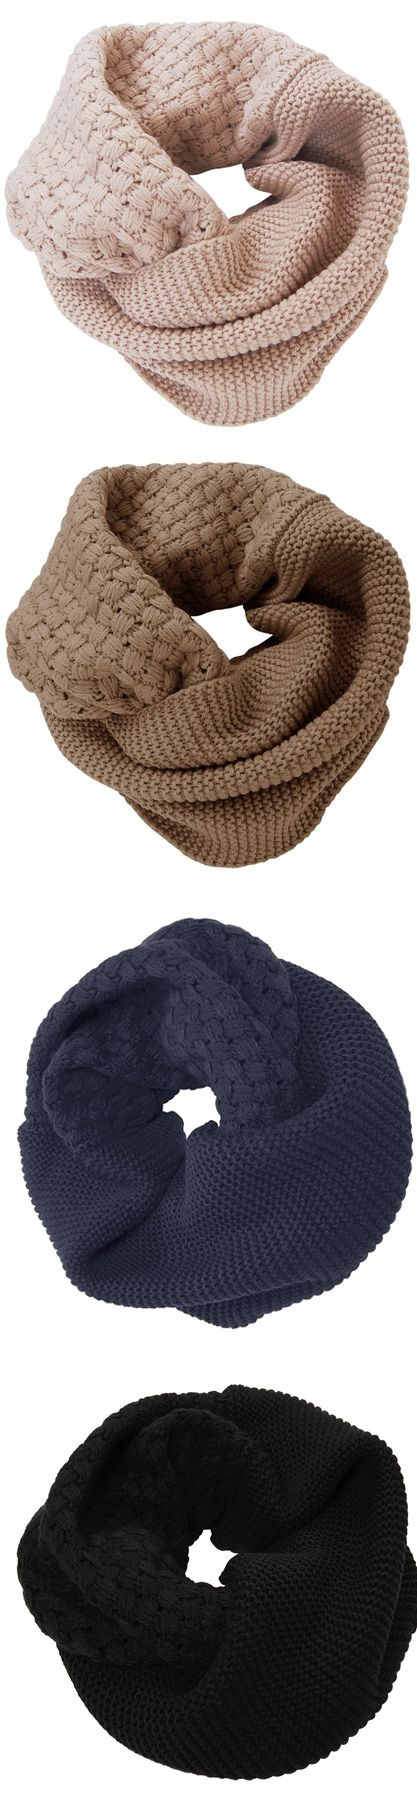 Thrilled that they brought these waffle knit circle scarves back this season! One of my favorites from last year!